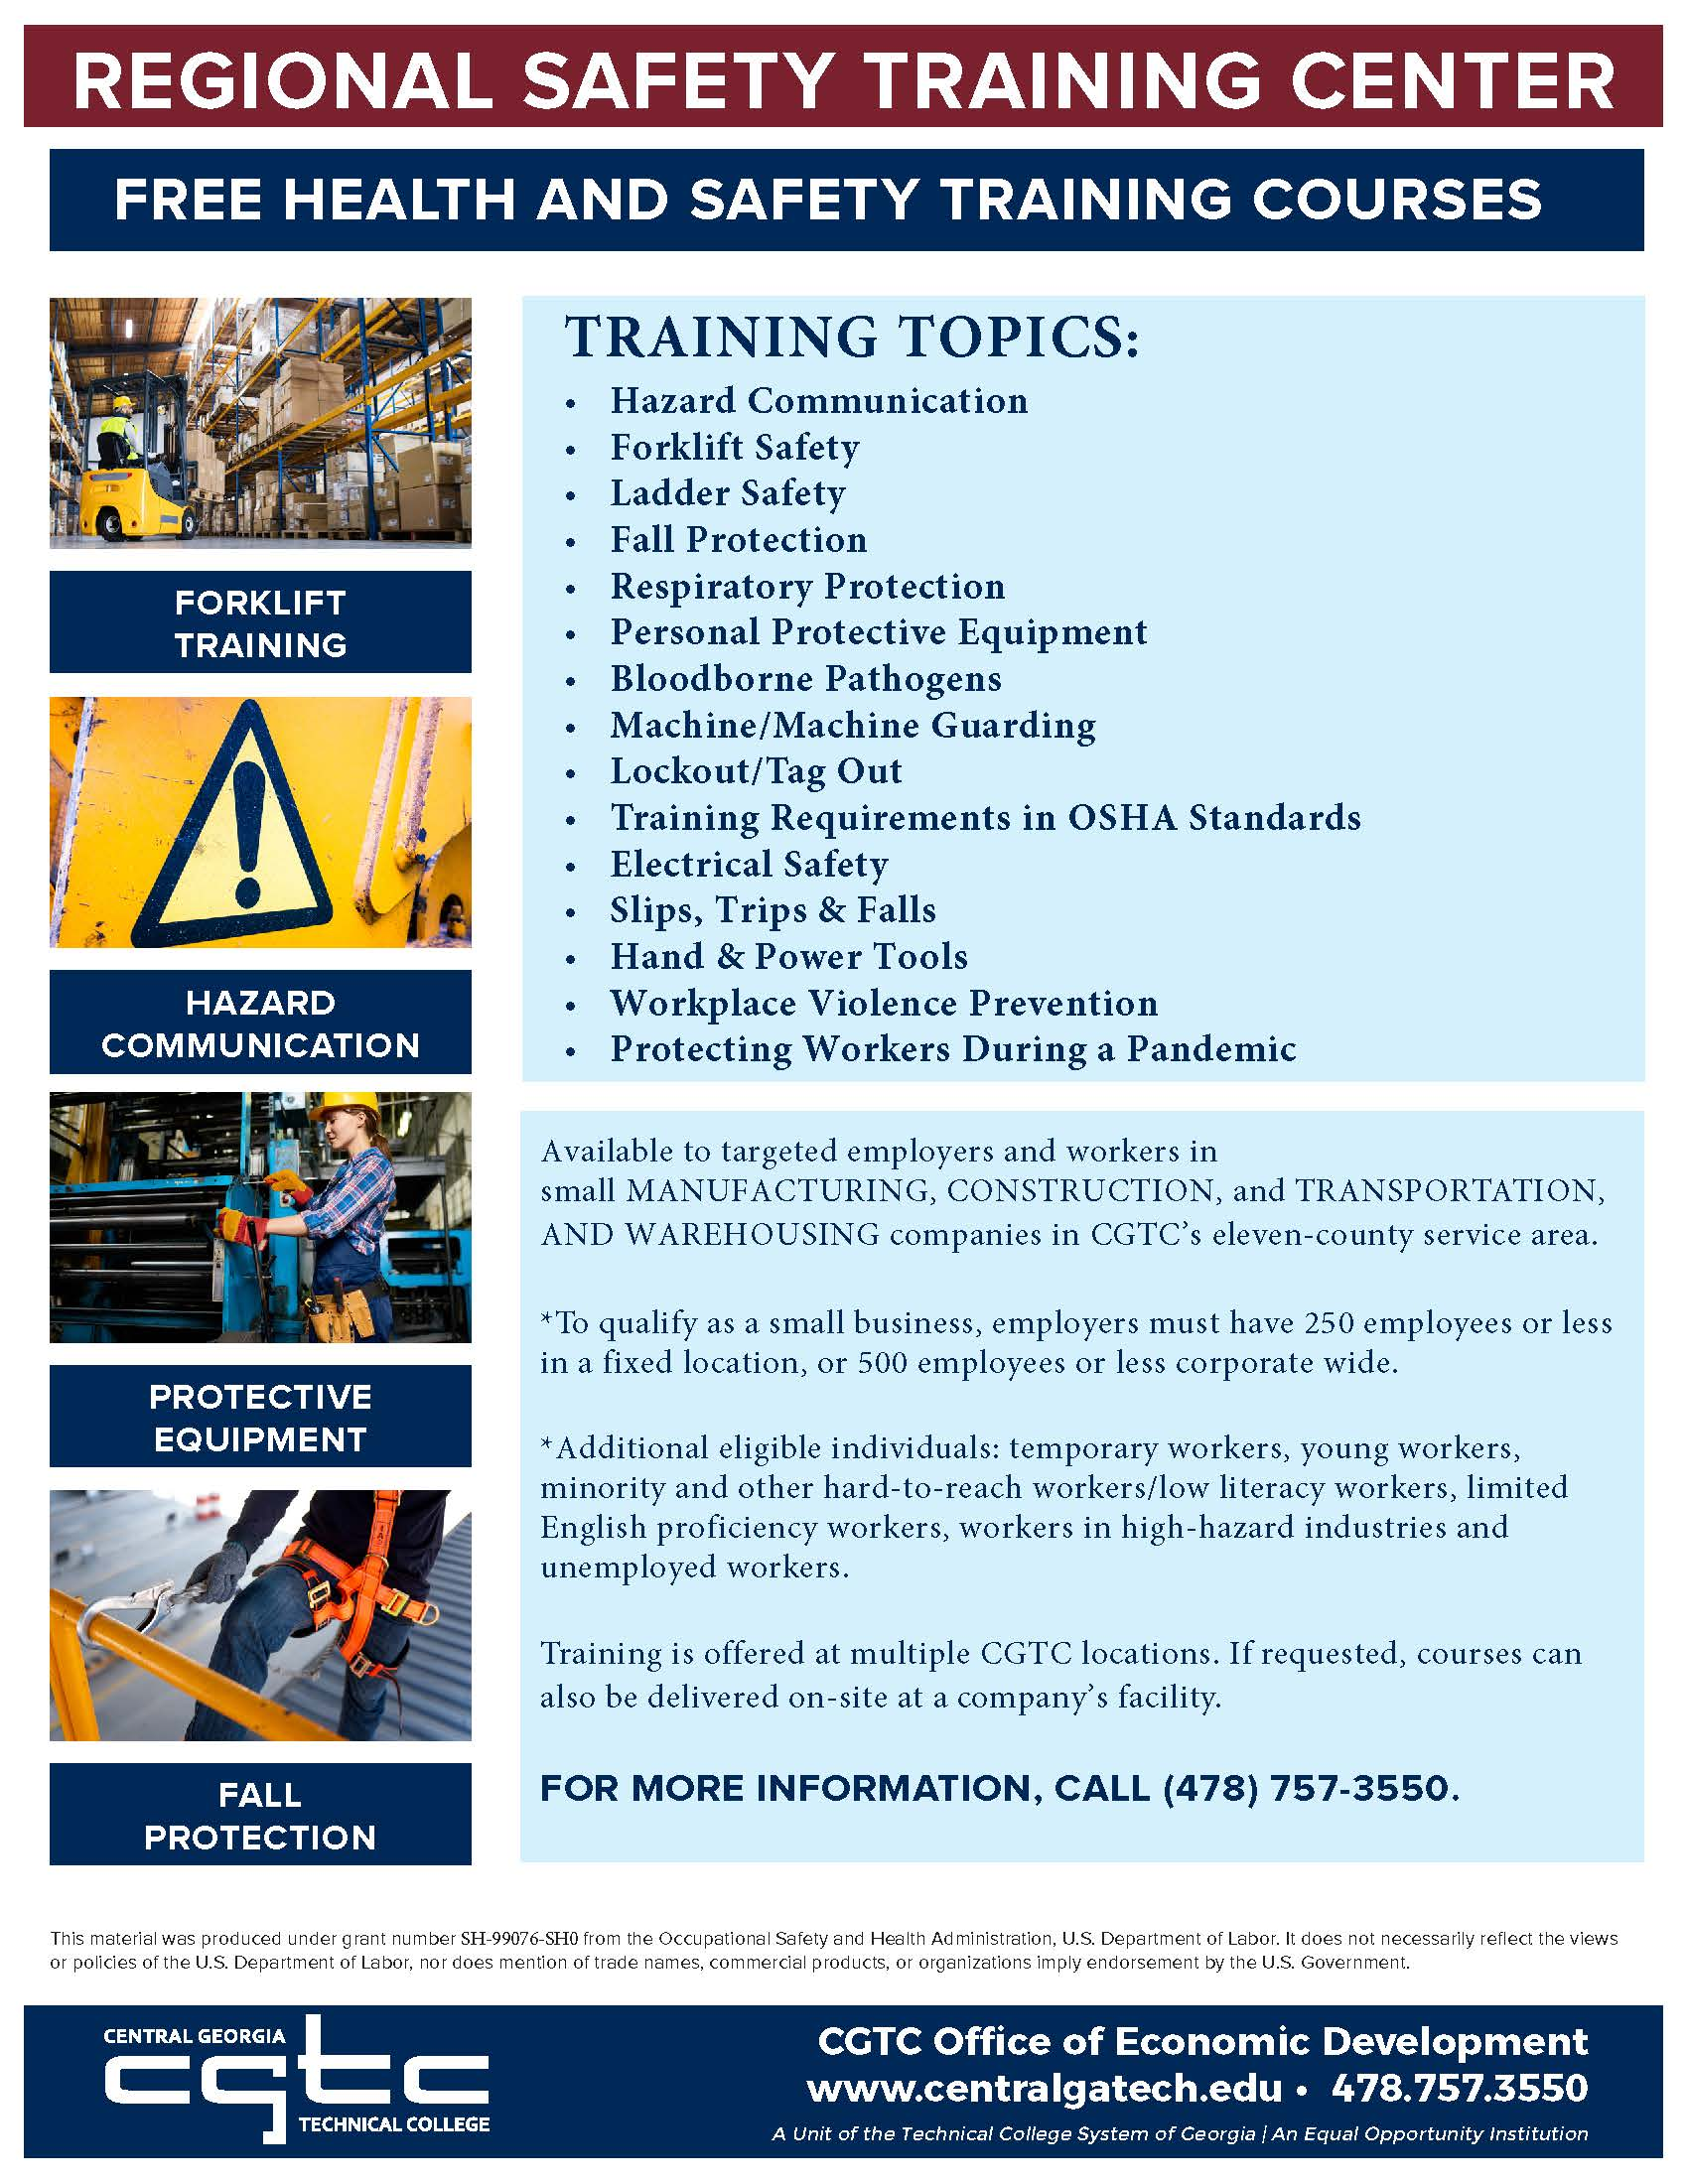 Regional Safety Training Center classes